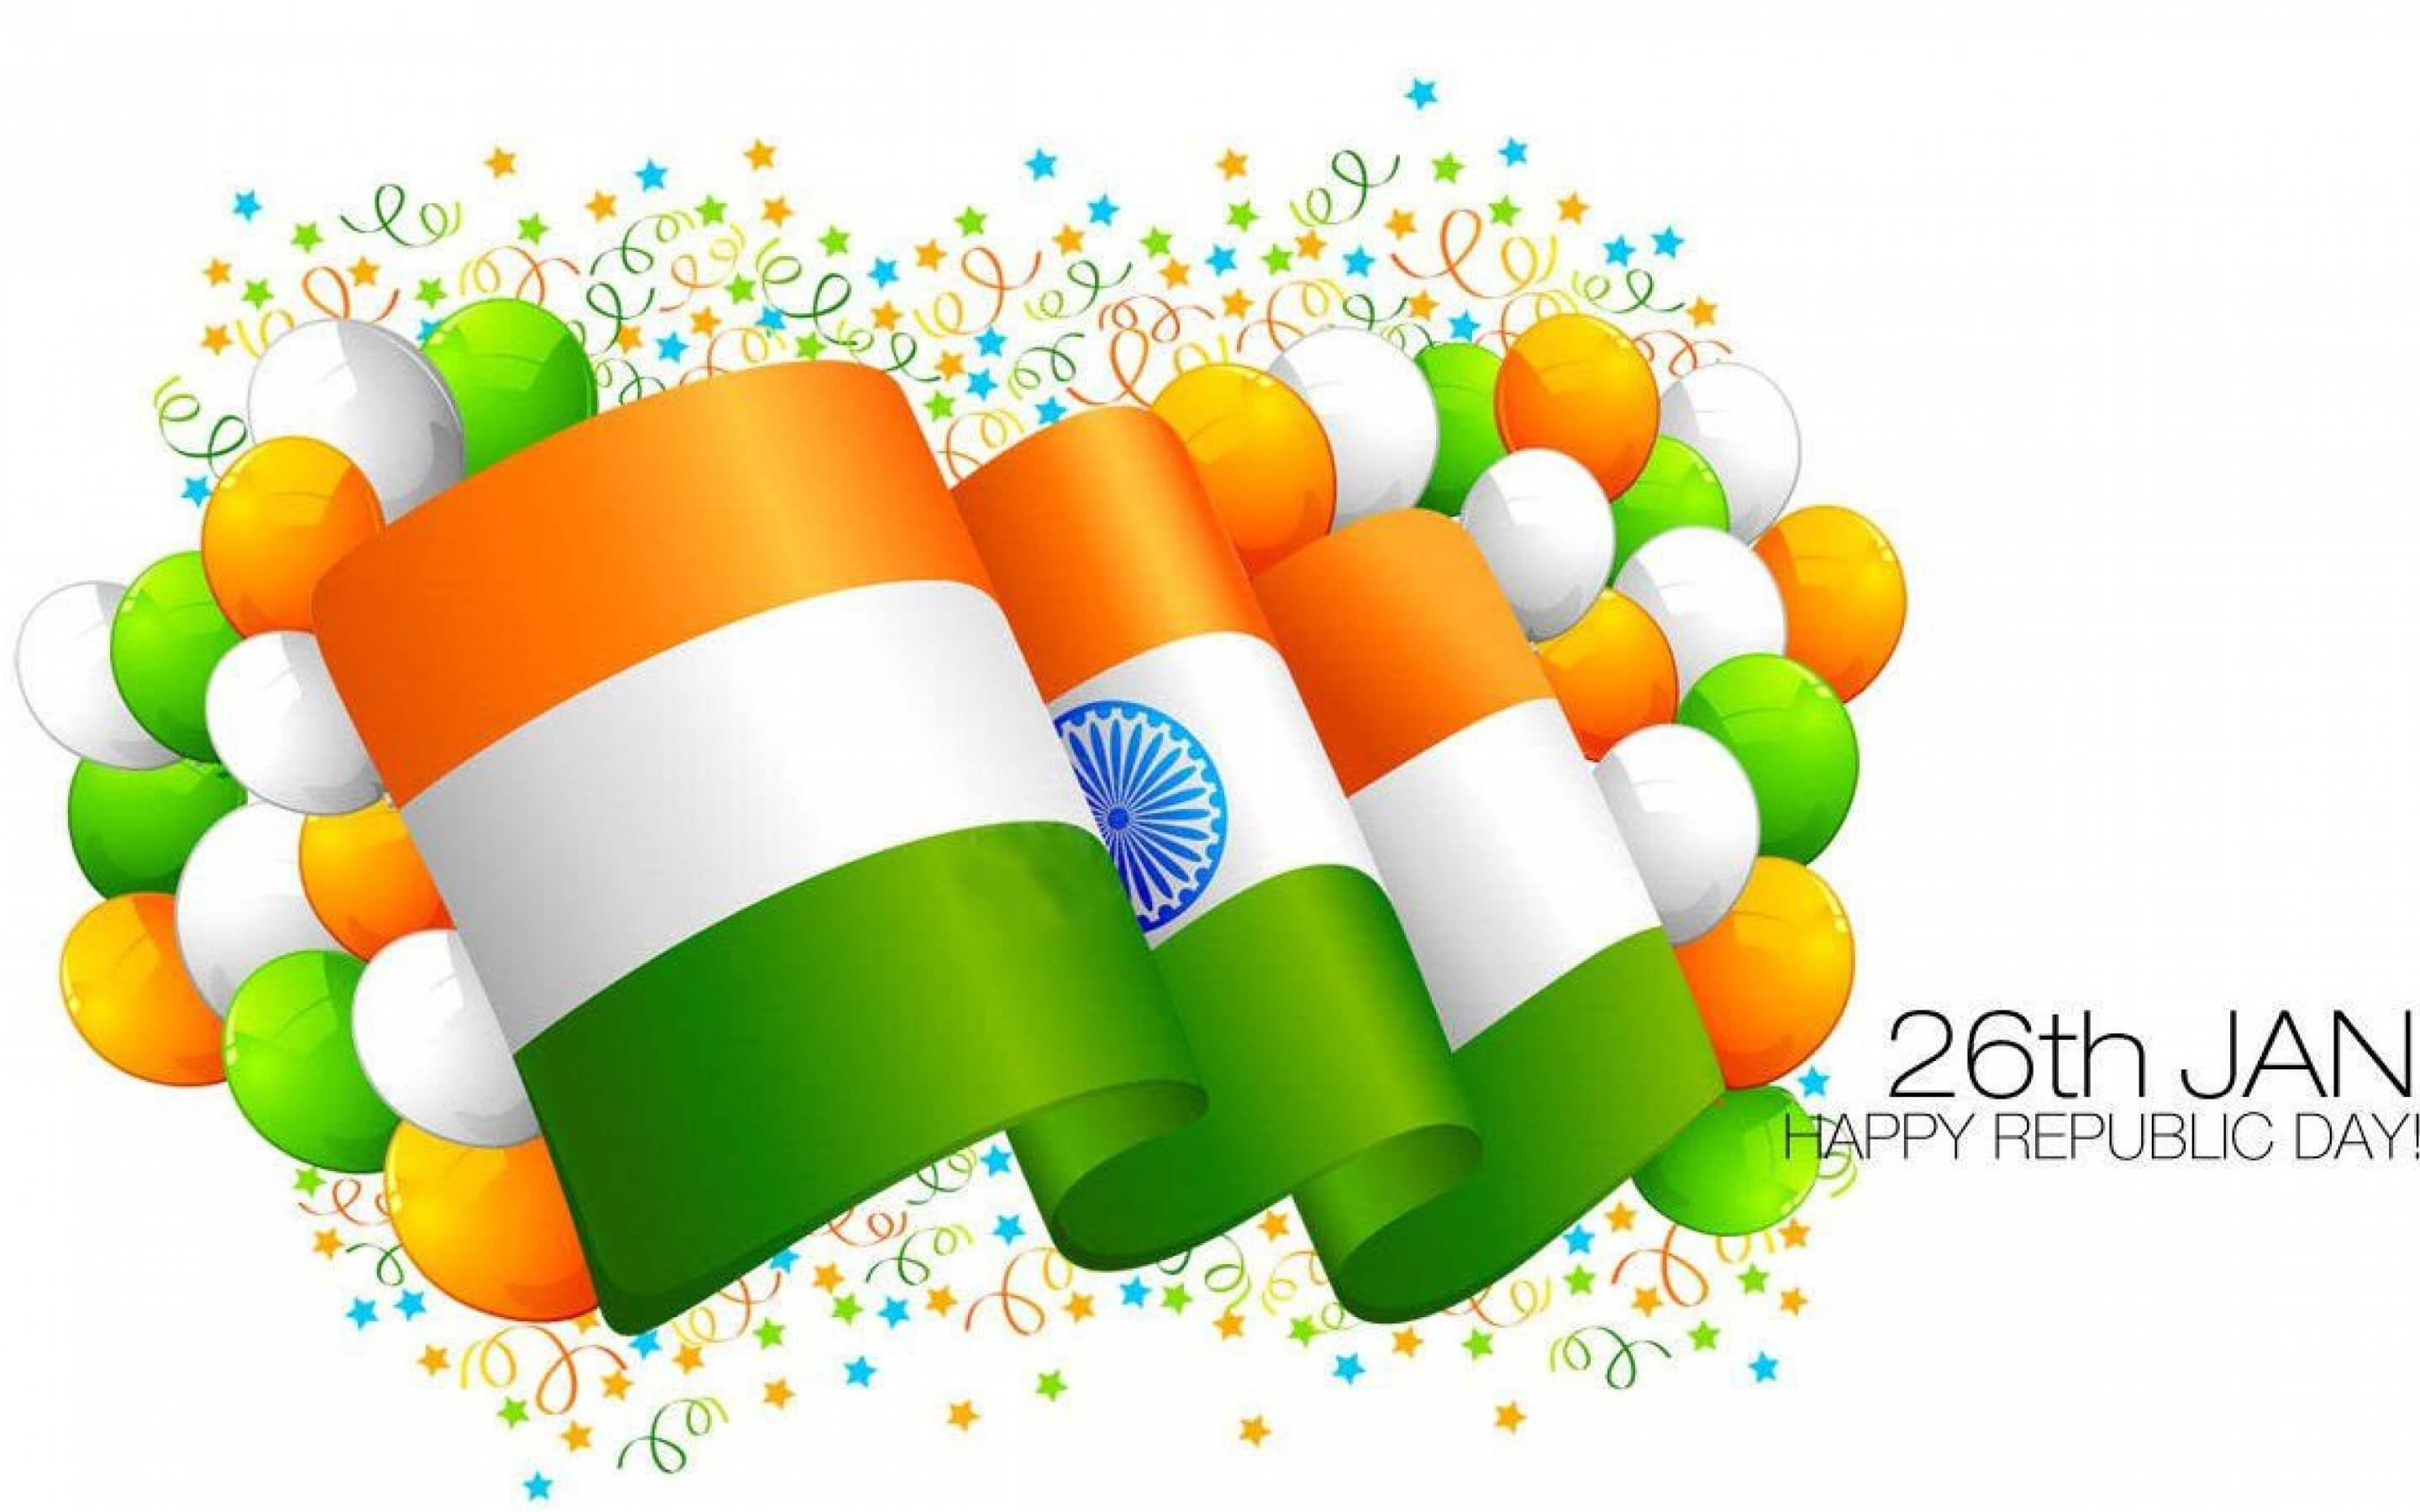 happy republic day wishes india 26 january hd pc wide wallpaper